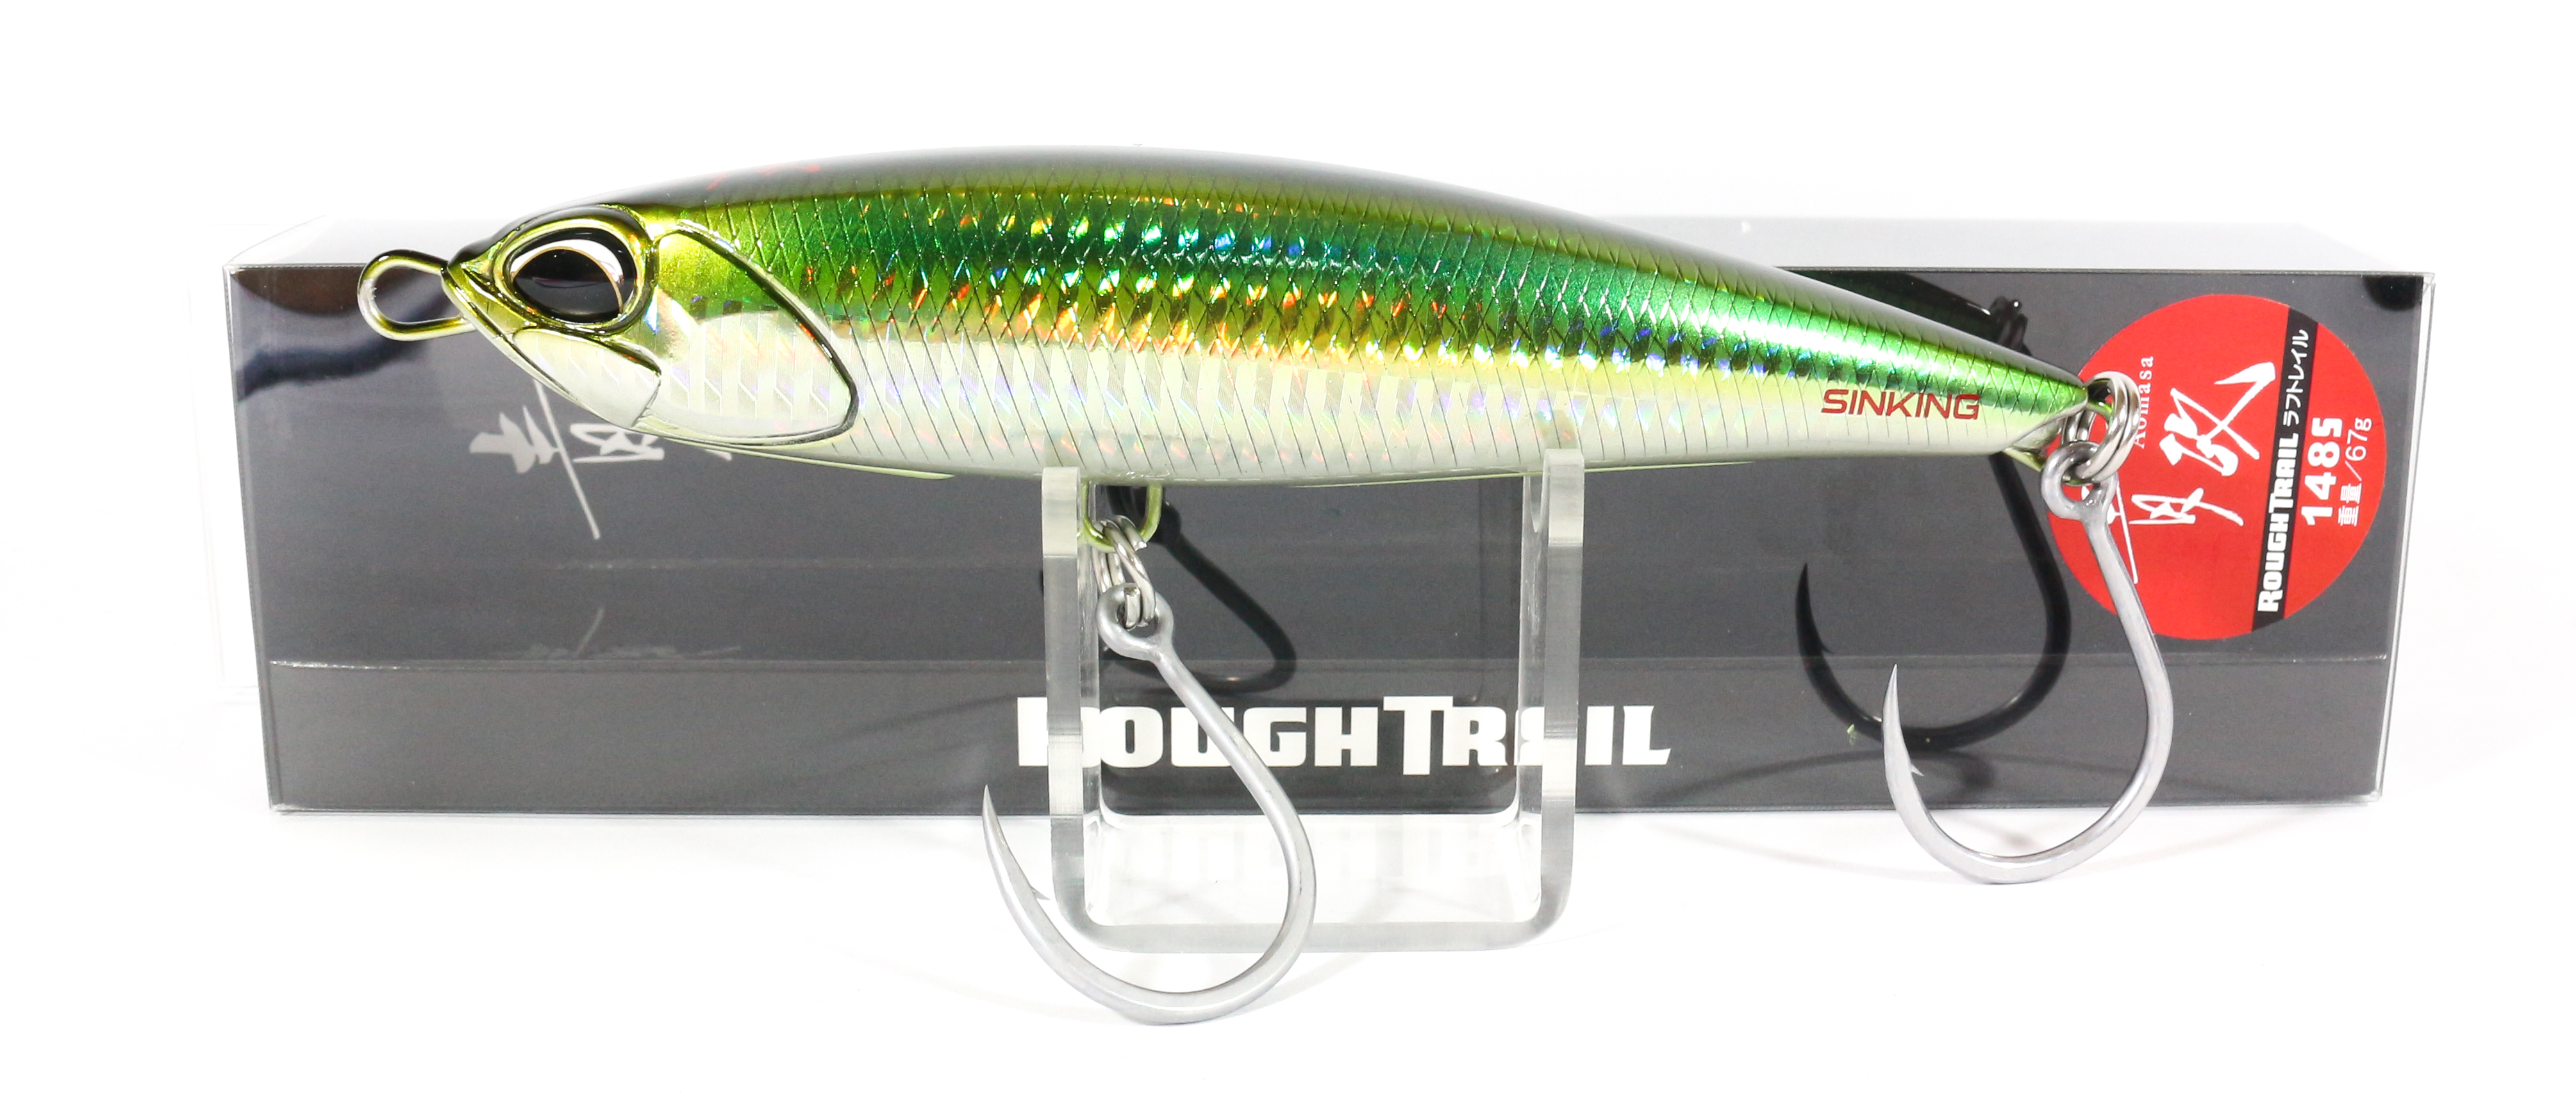 Duo Rough Trail Aomasa 148 Pencil 67 gram Sinking Lure GHA0144 (4708)